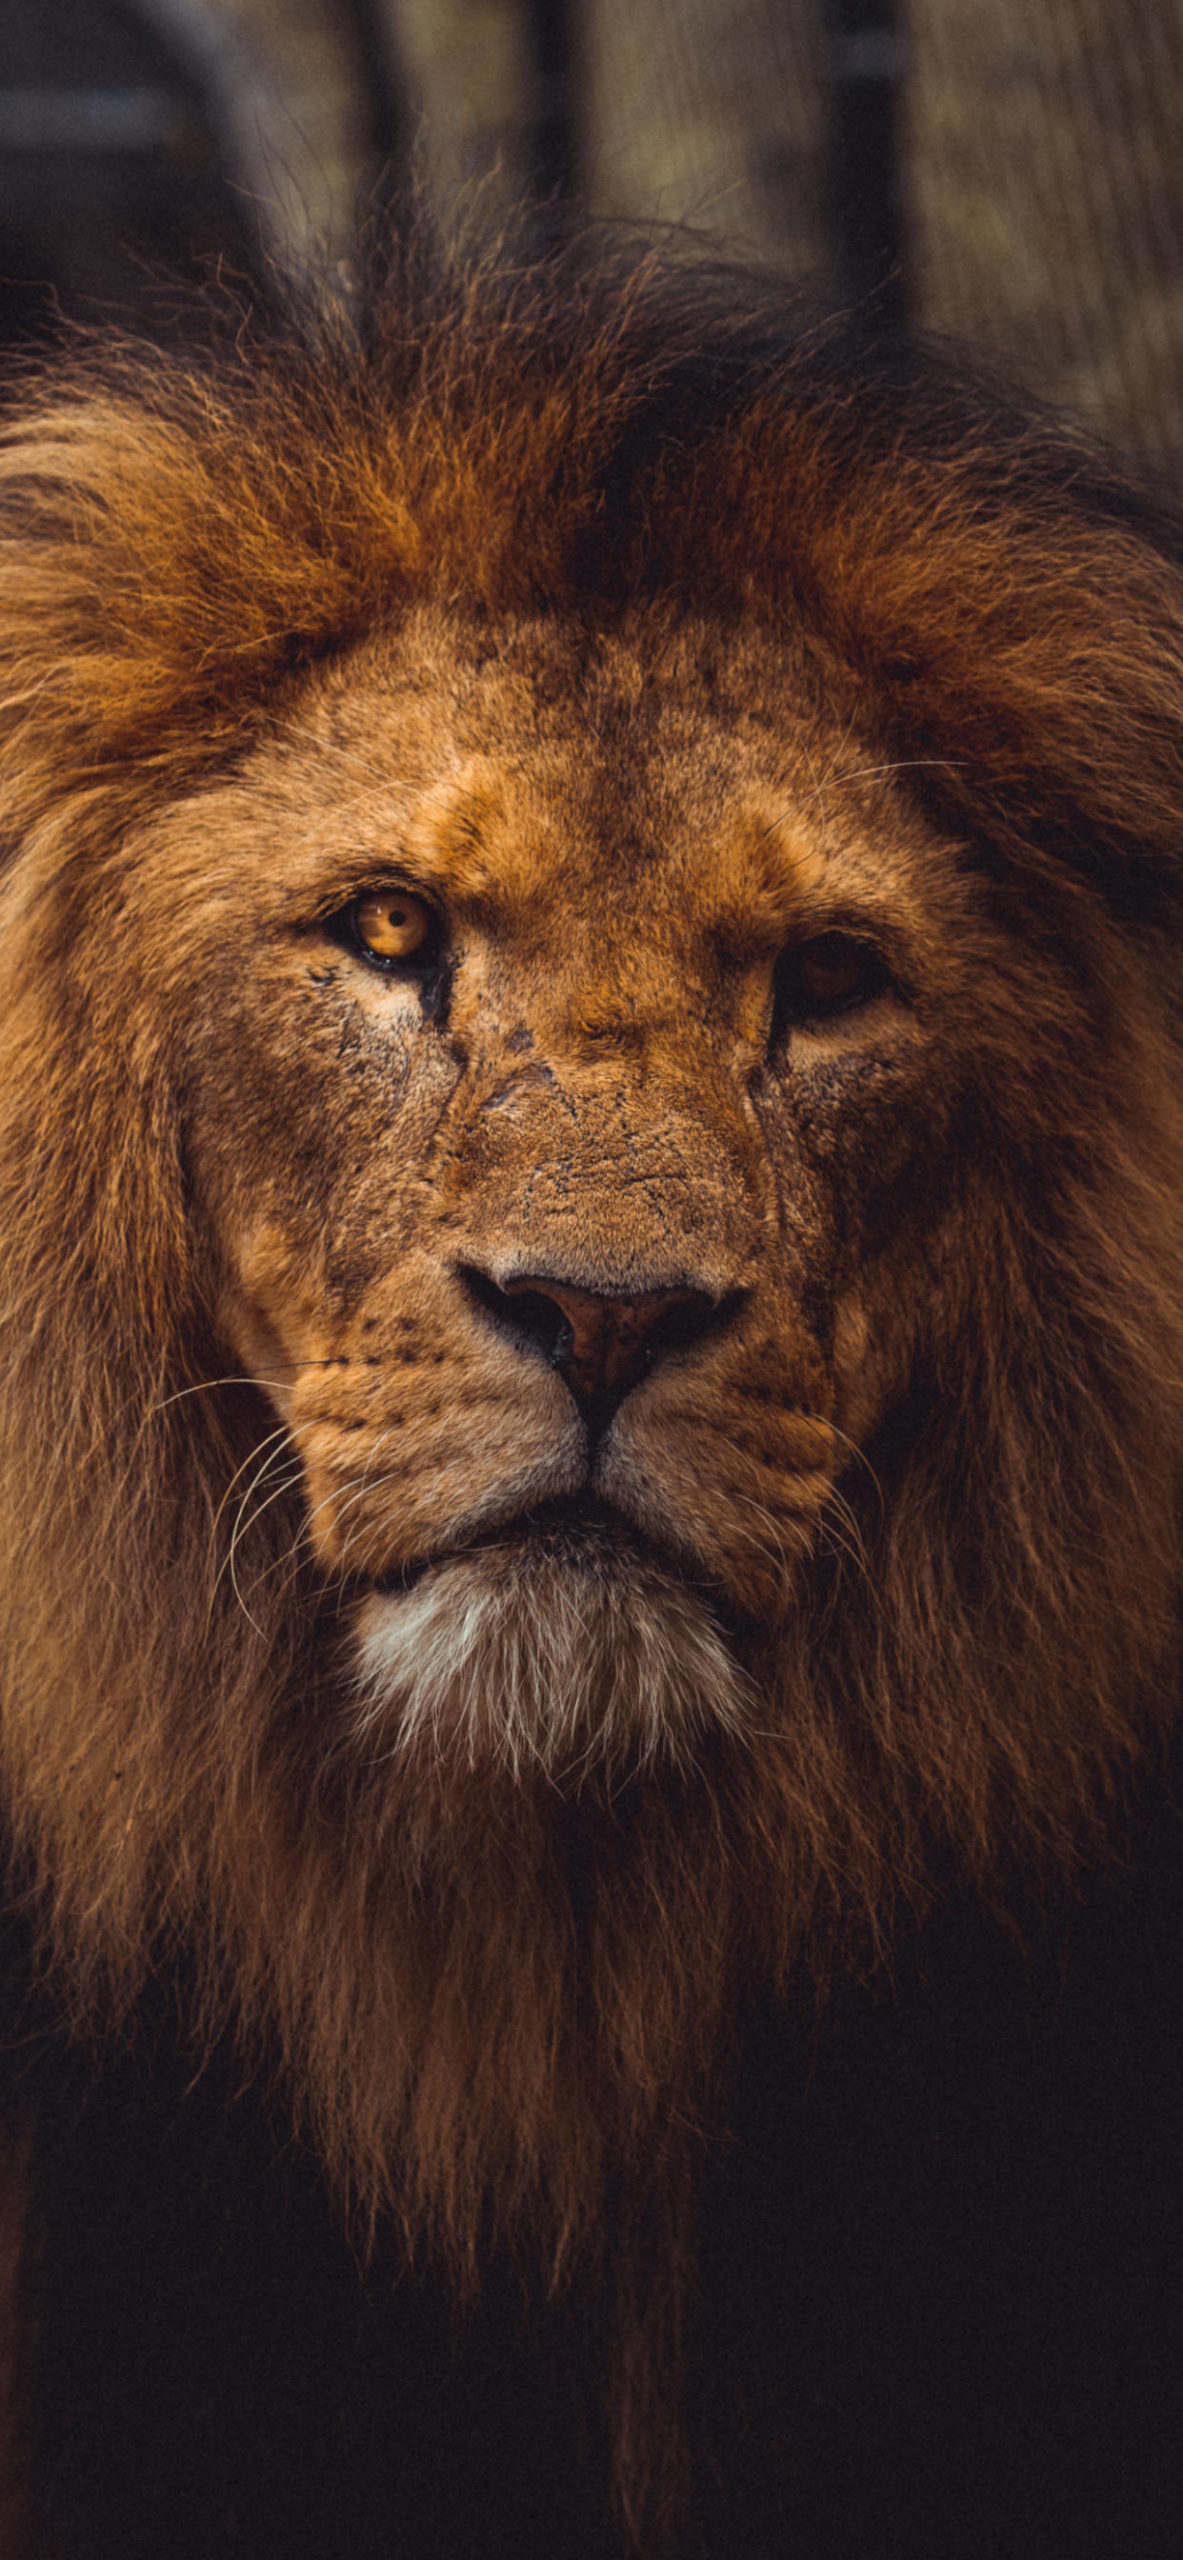 iPhone wallpapers lion old scaled Lion